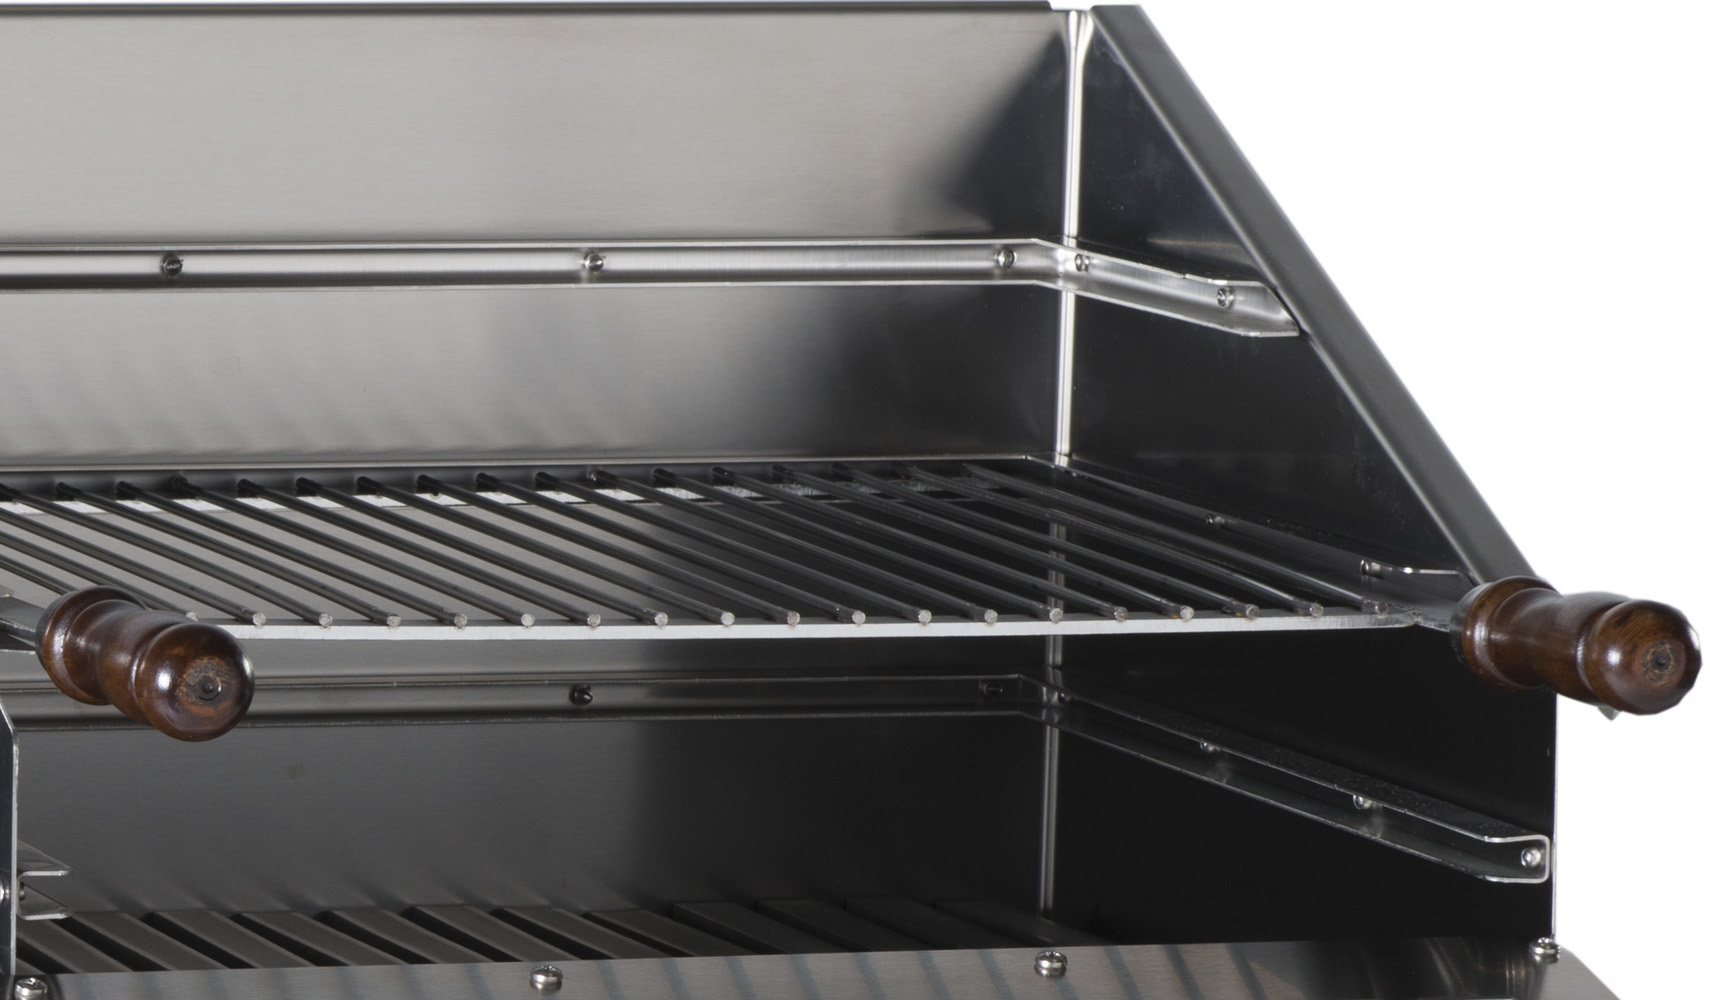 duo 500 inox gas plancha and barbecue the barbecue store spain. Black Bedroom Furniture Sets. Home Design Ideas